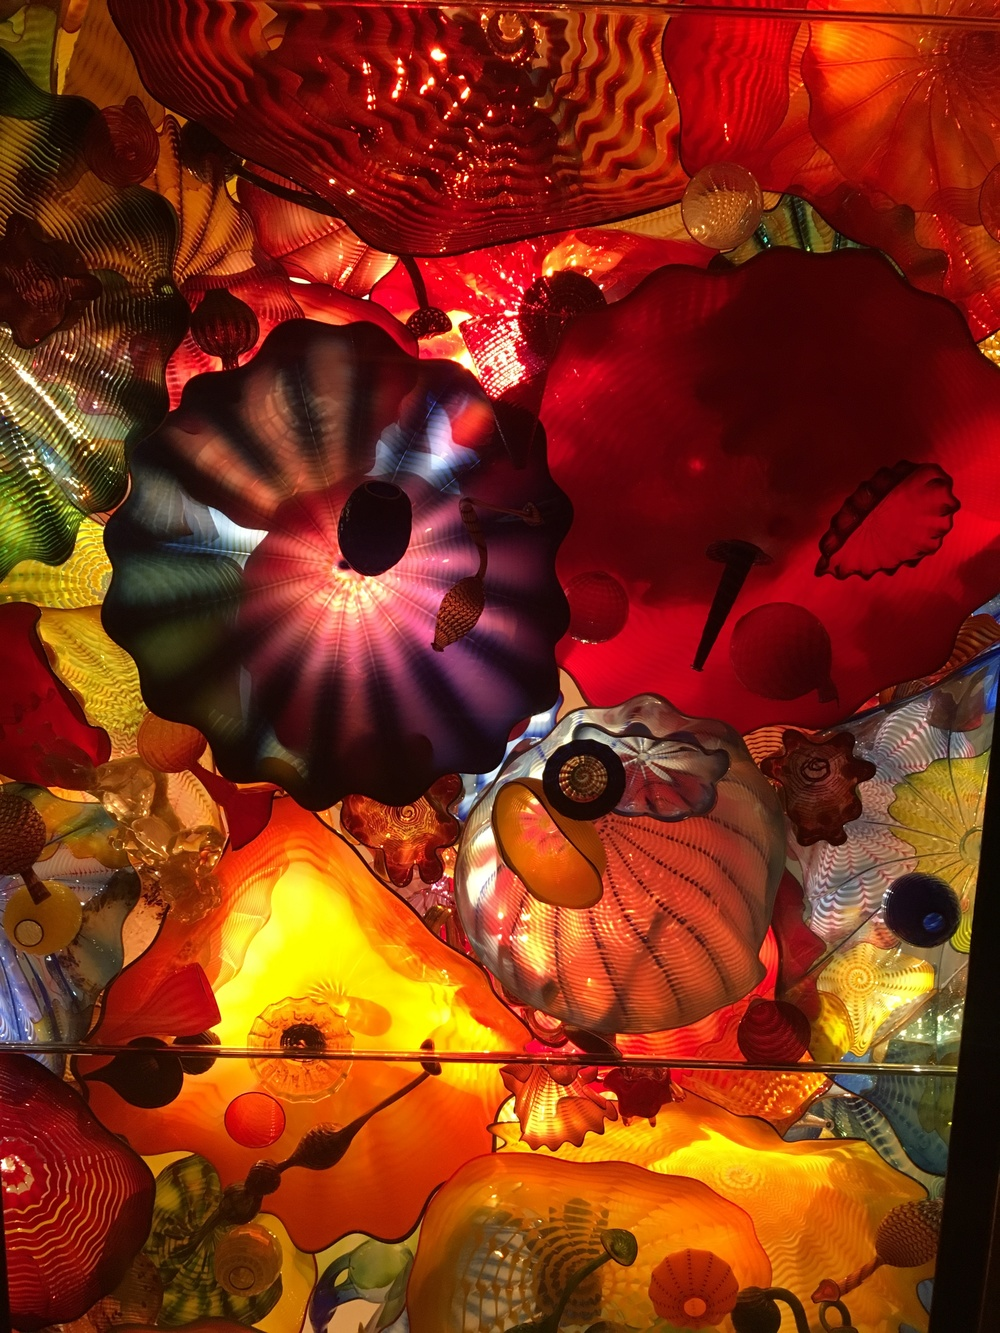 Chihuly!